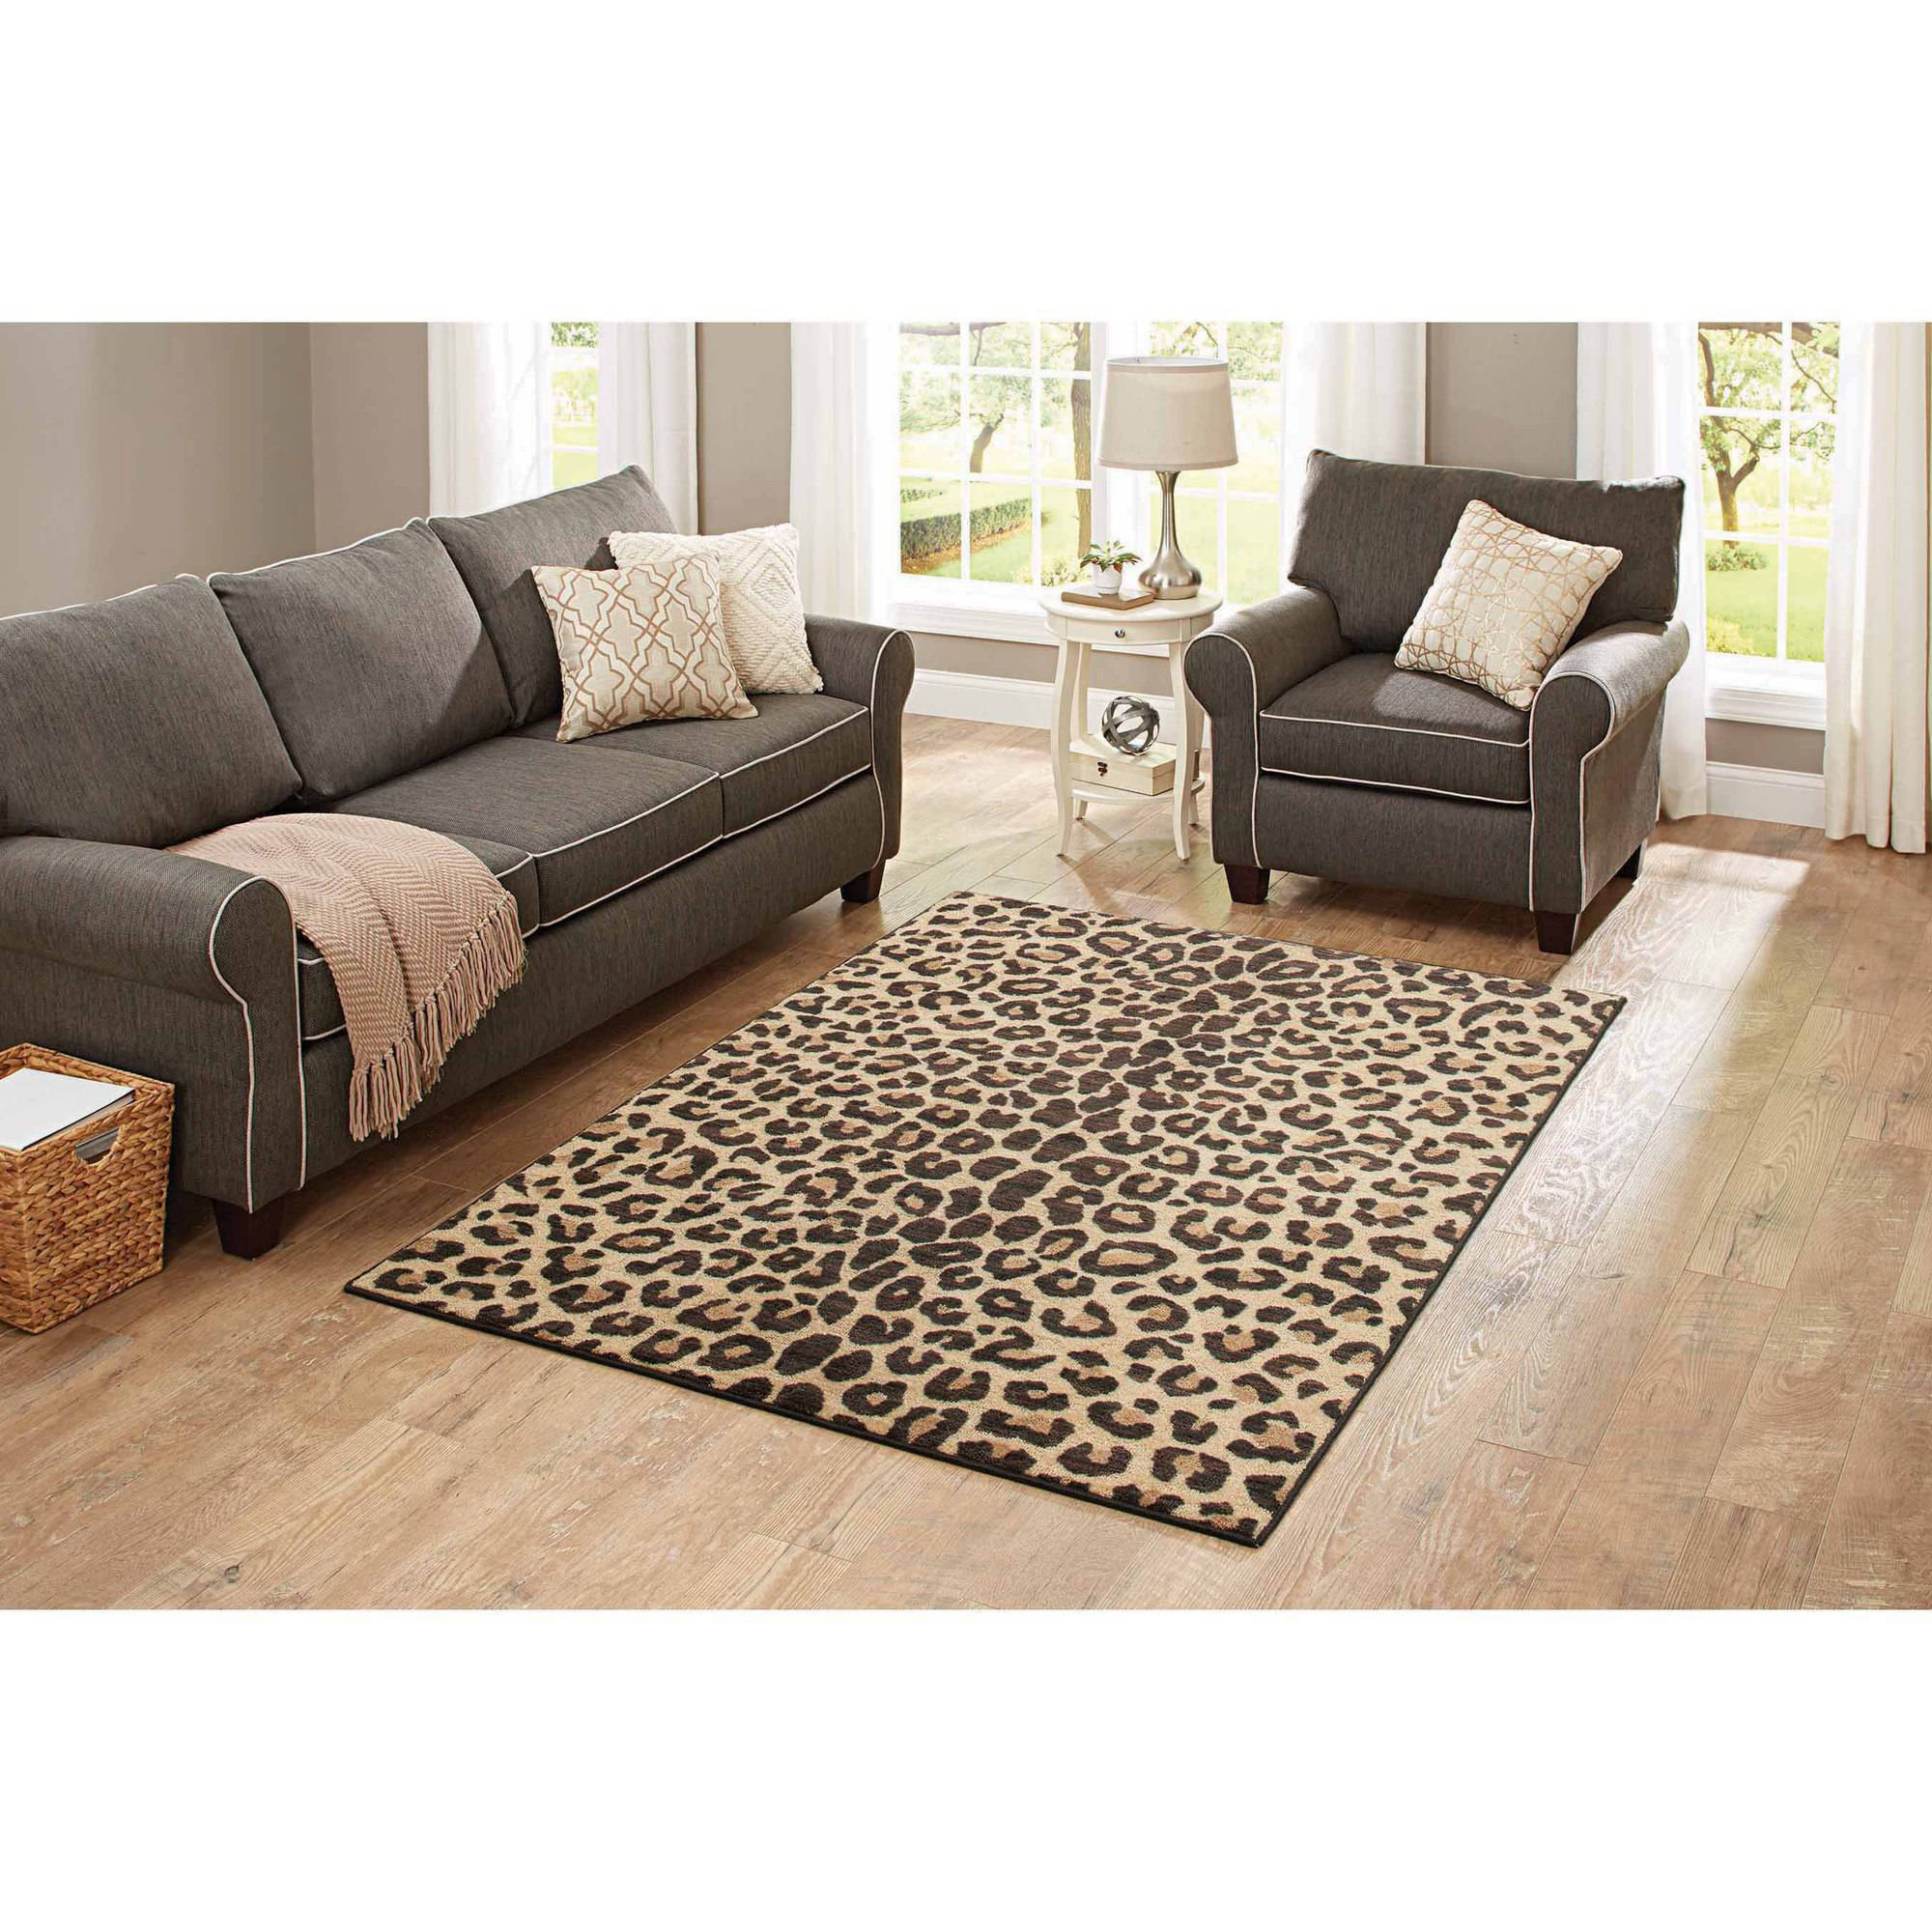 Better Homesu0026gardens Bhg 5x7 Cheetah Camel Area Rug